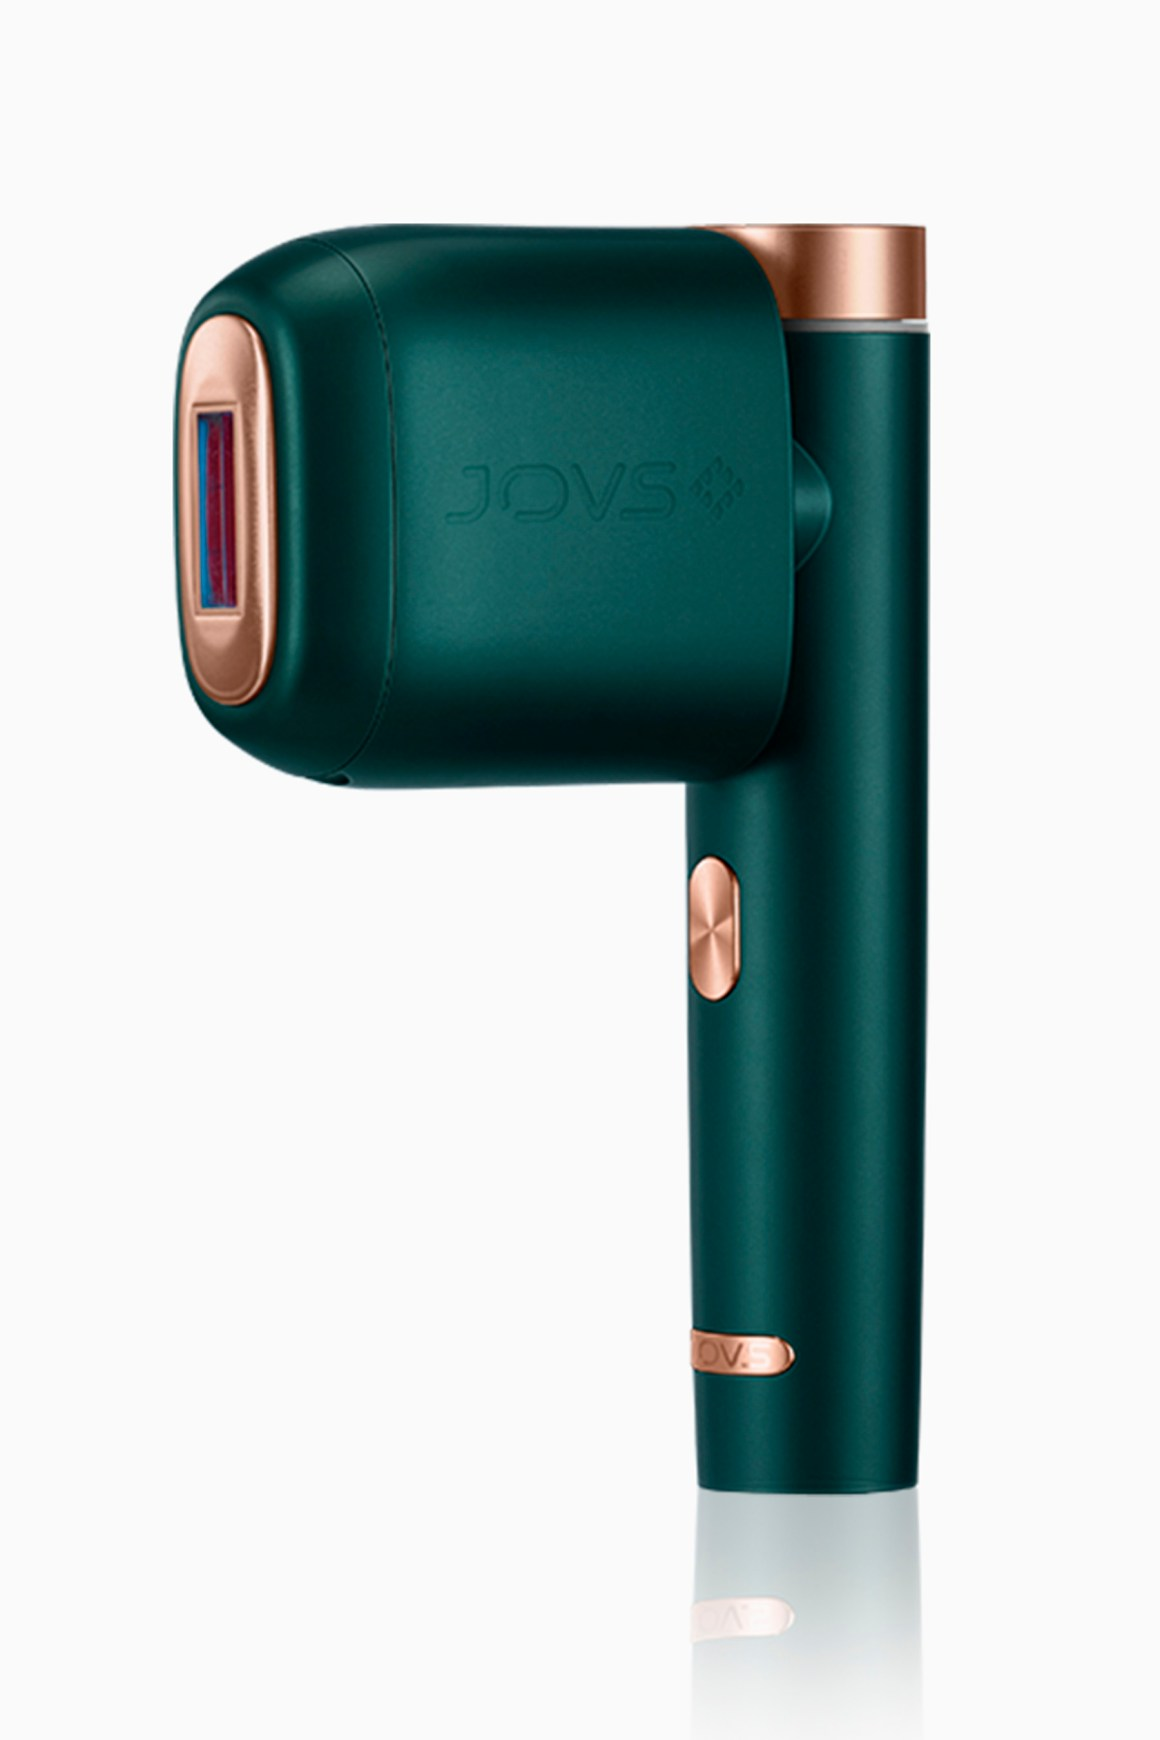 Oh So Smooth -Hair Removal with The JOVS Venus Pro